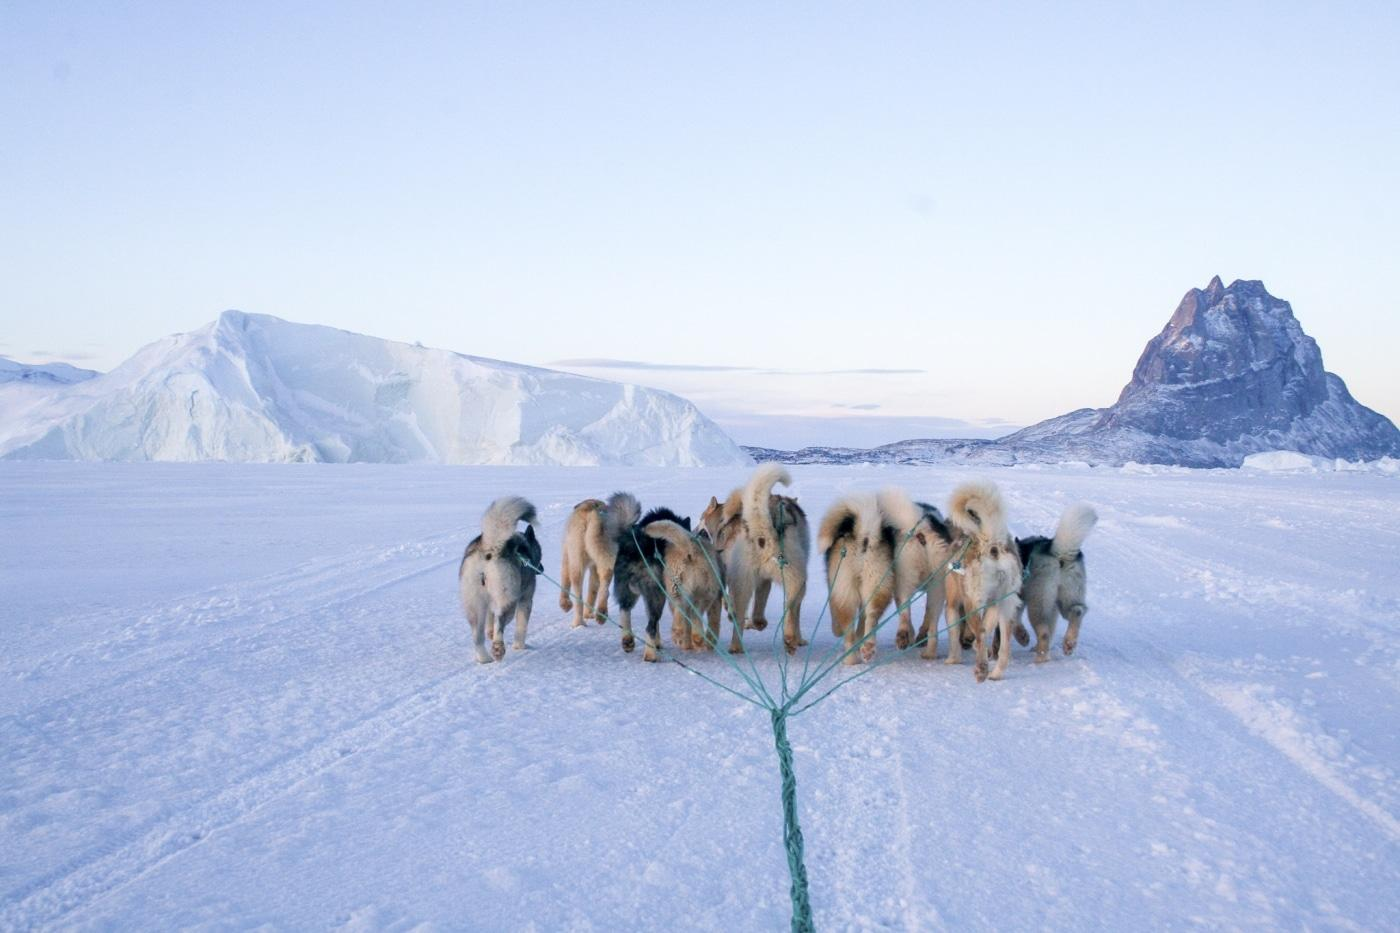 Photo from one of the dog sledding excursions between settlements with the Uummannaq mountain in the background. Photo by Greenland Fiord Tours